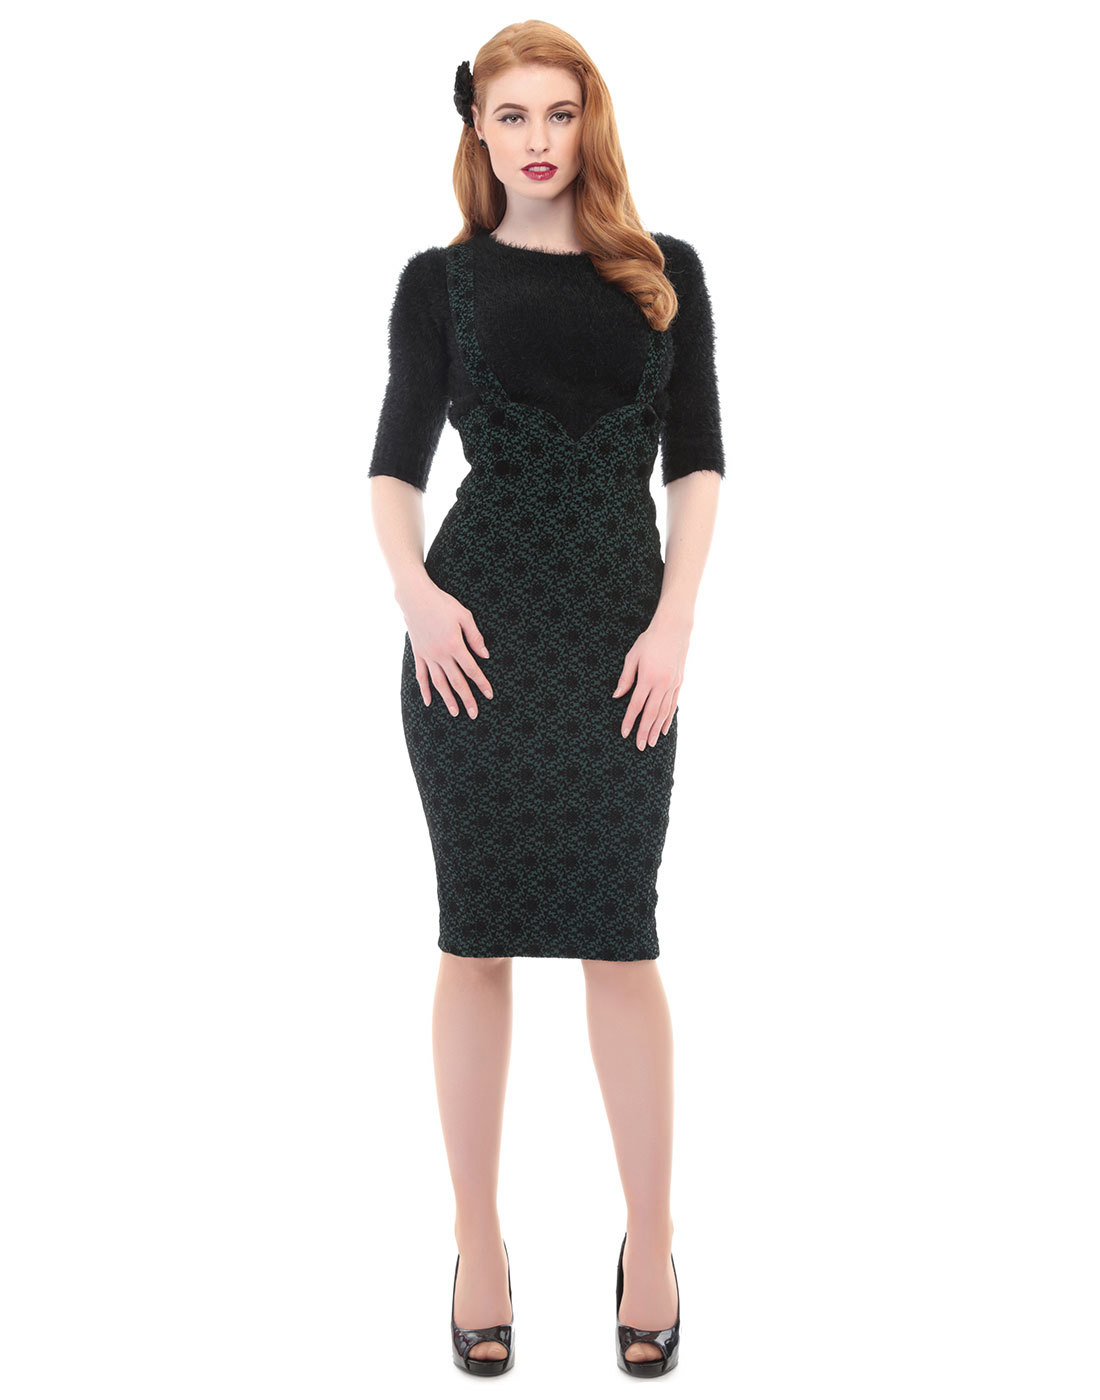 Agarva COLLECTIF 60s High Waist Button Brace Skirt